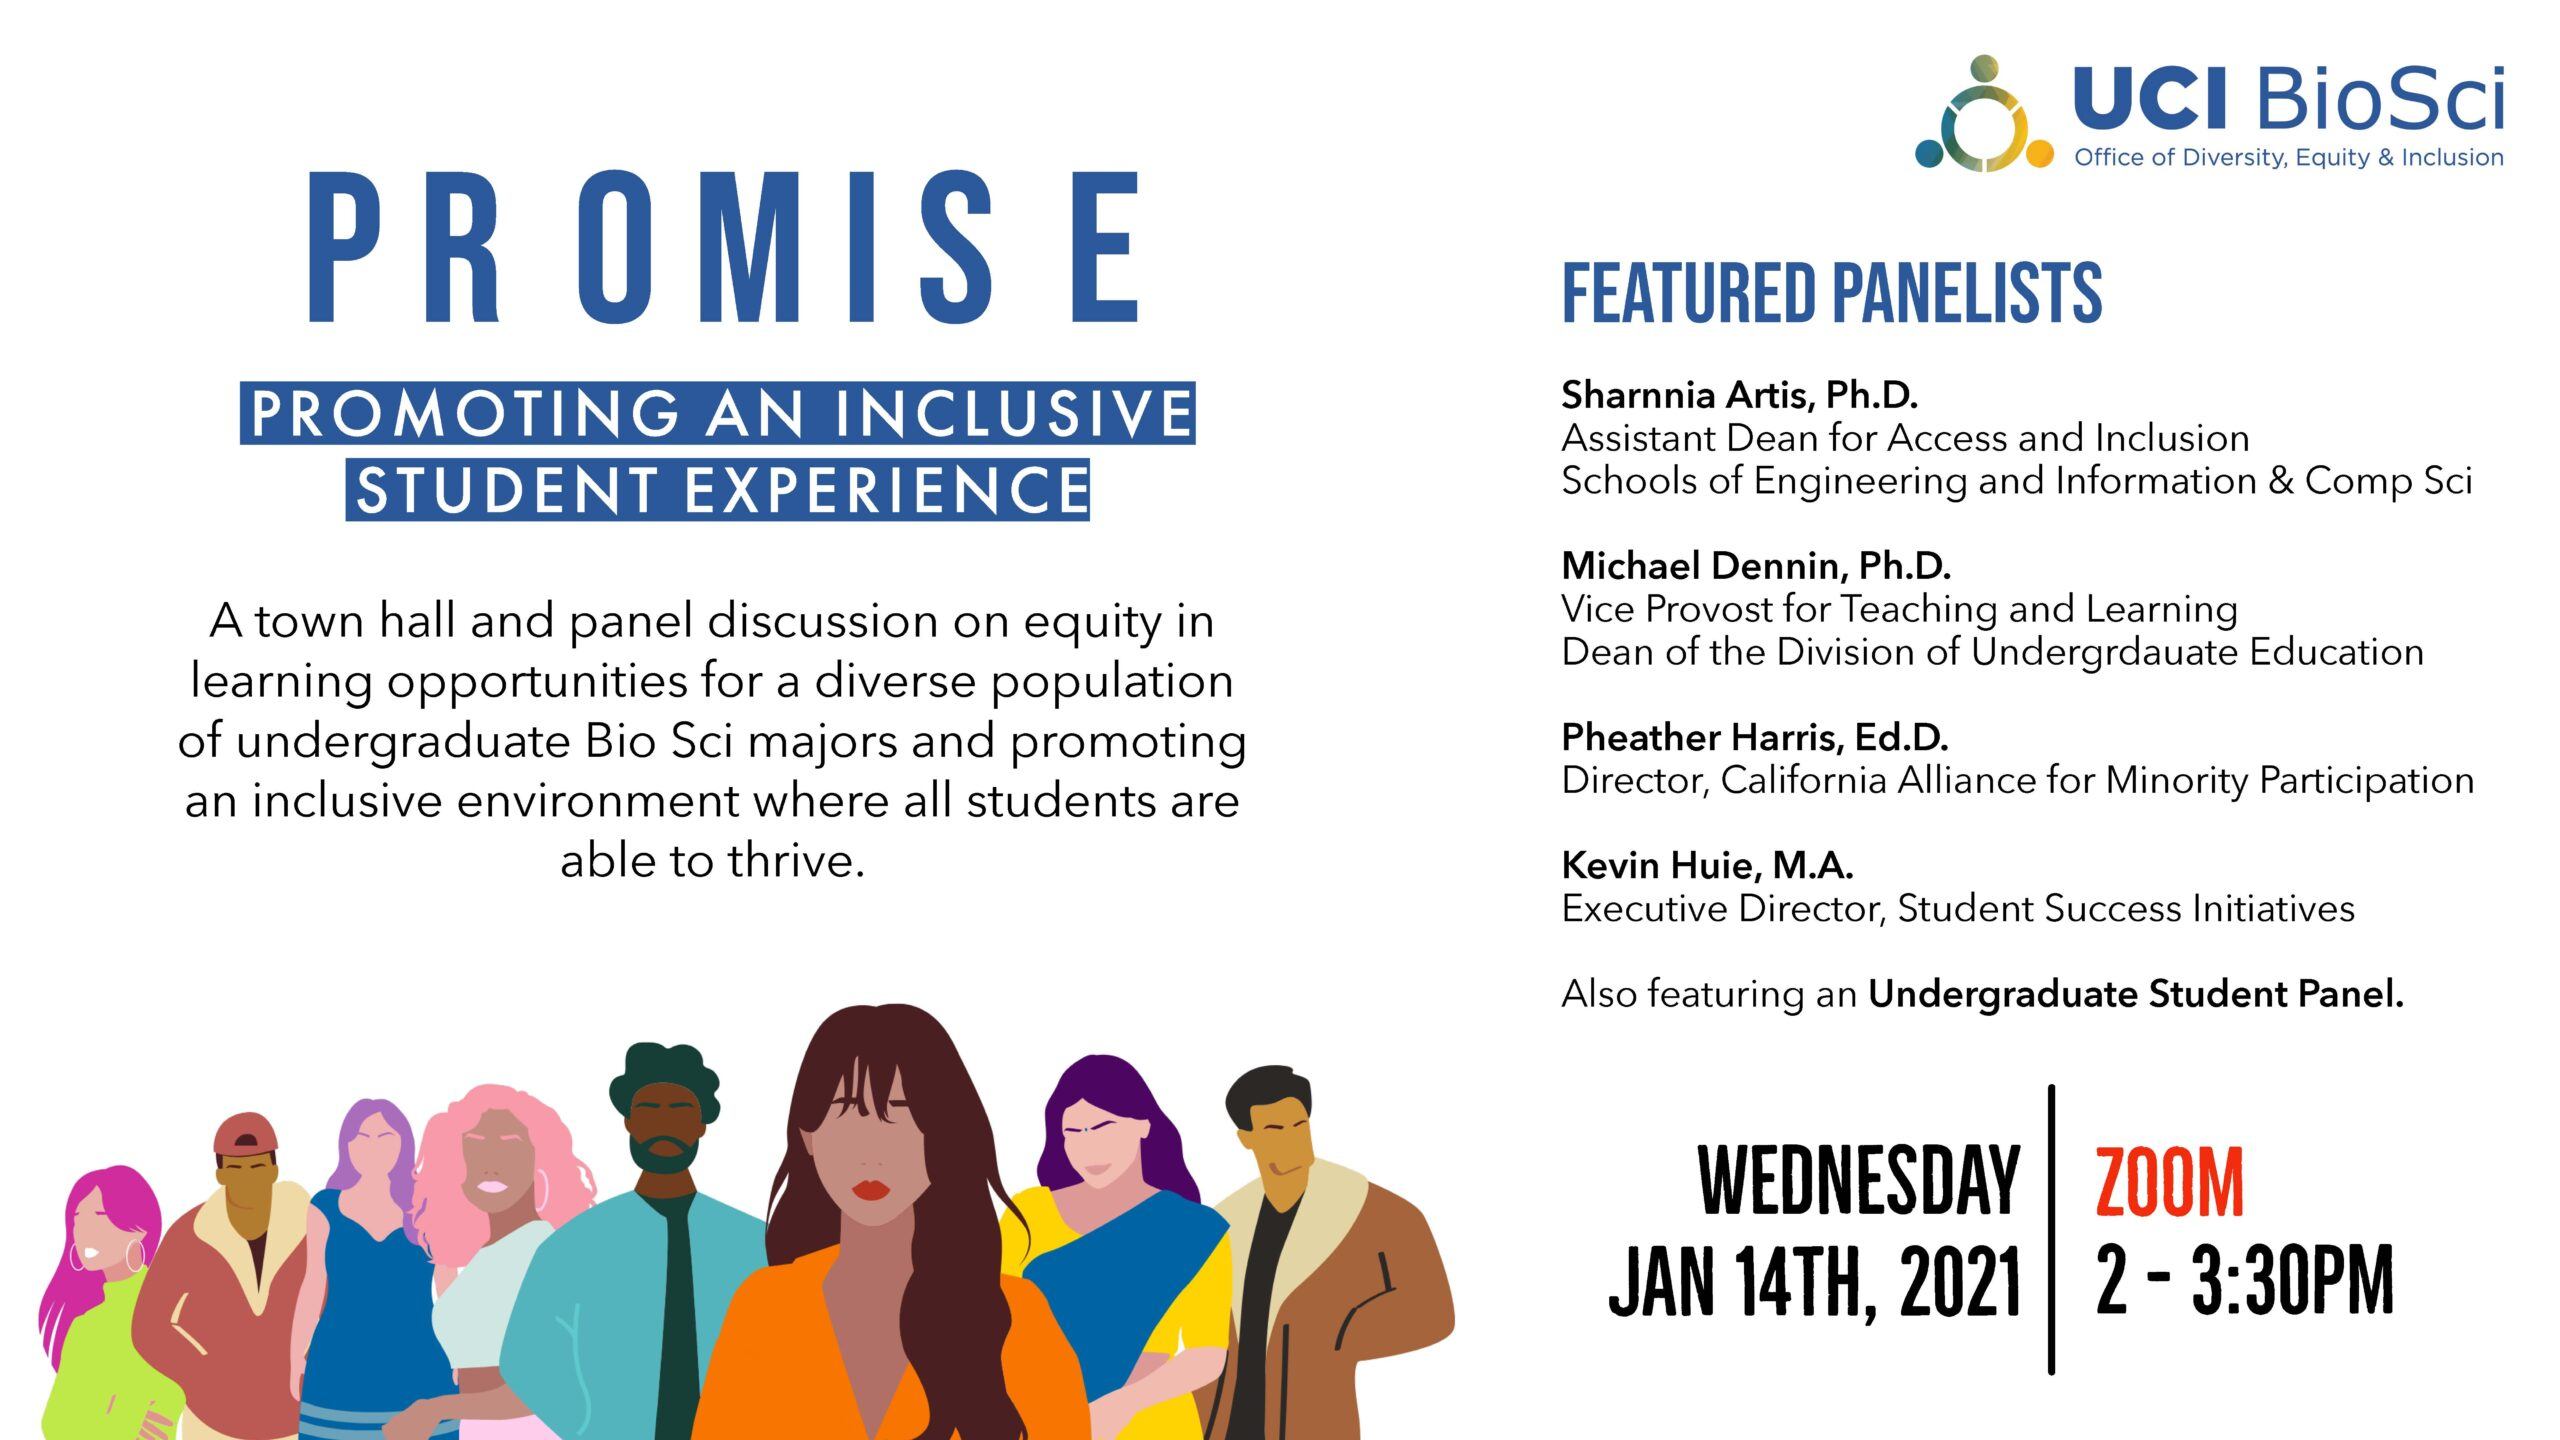 PROMISE event flyer for the 1/14/21 event.